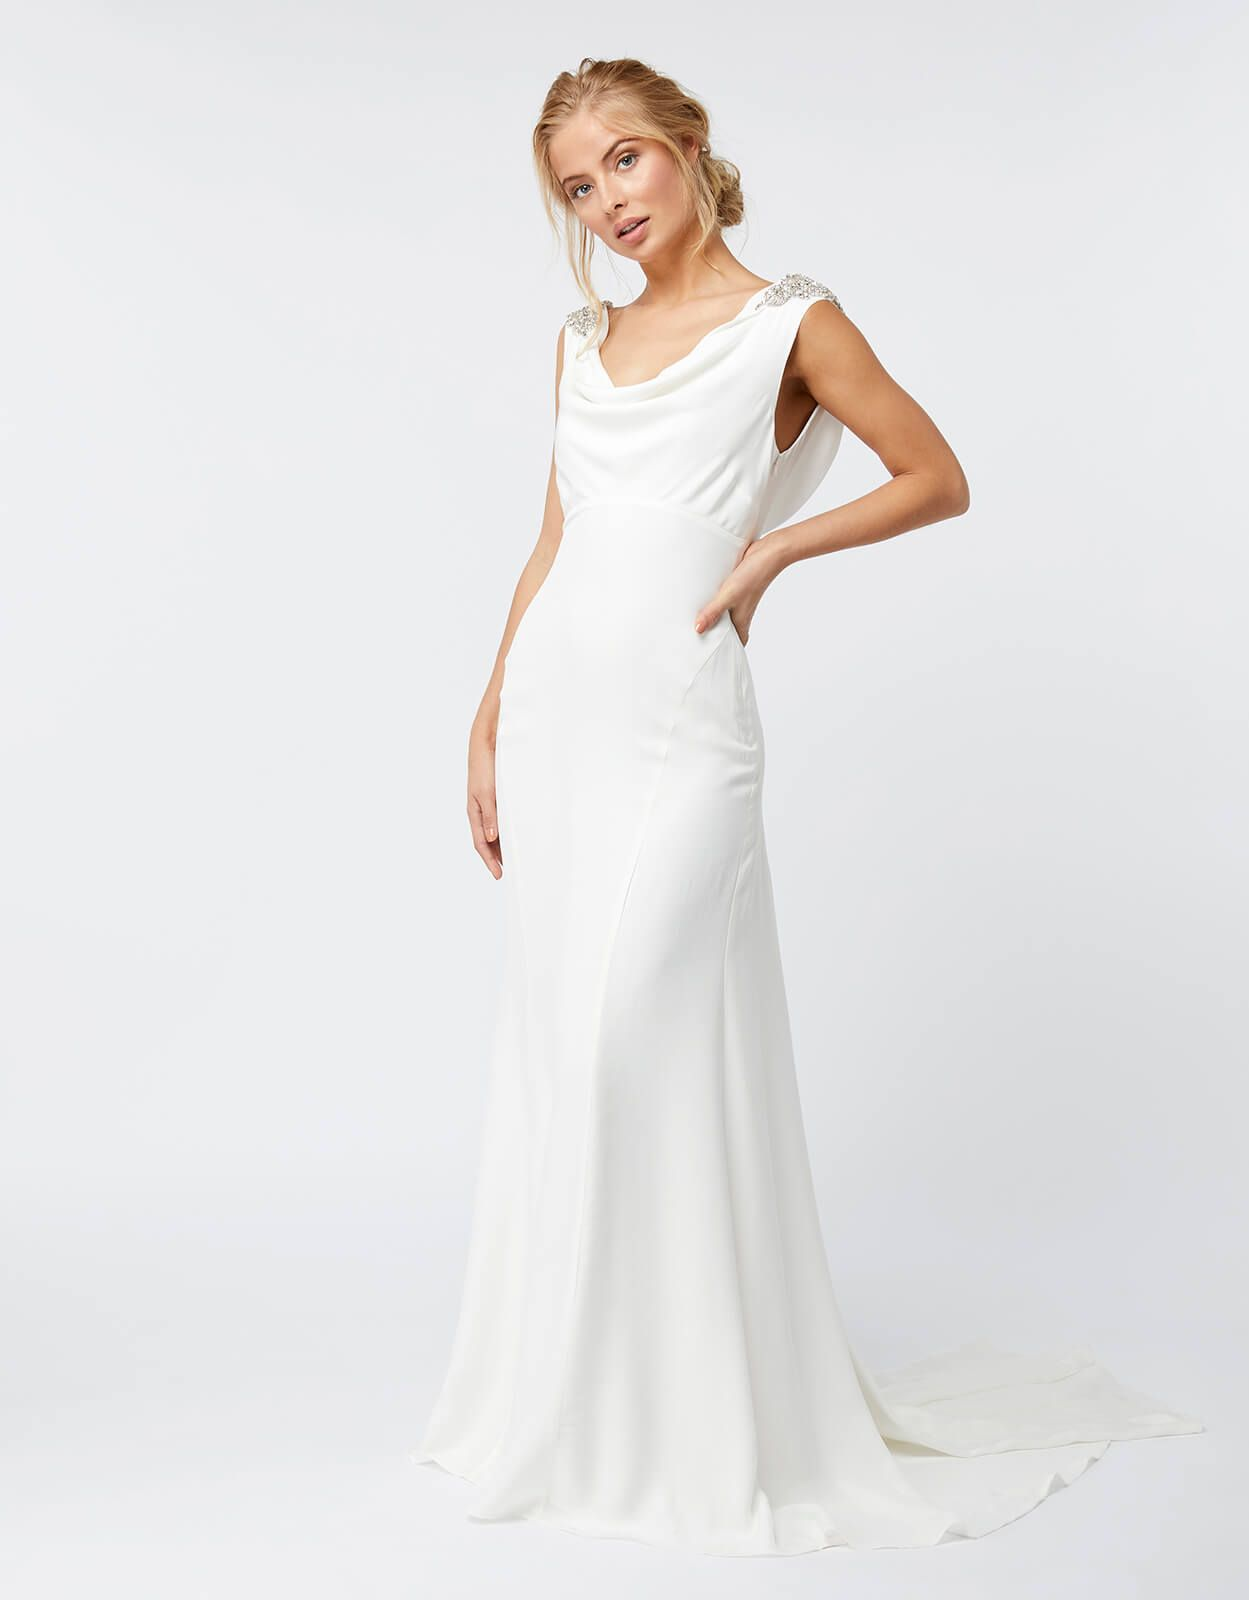 This Slinky Ivory Wedding Dress Features A Cowl Neckline An Empire Waist And Figure Flattering Mermaid Skirt The Embellished Shoulders Add Glamorous